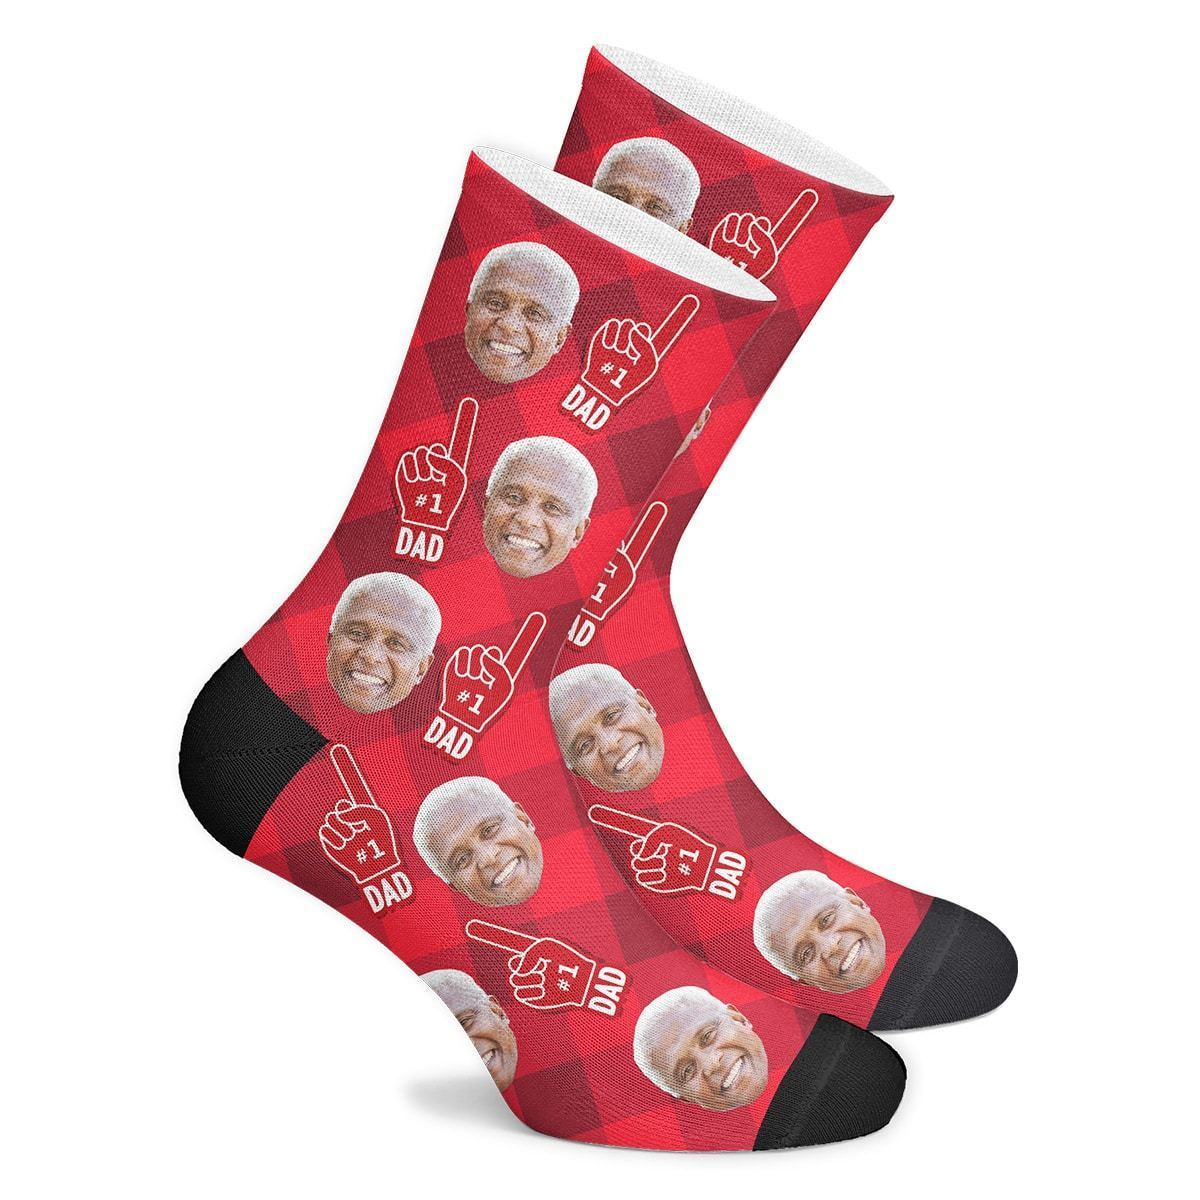 Dad Fan Personalisierte Gesicht Socken